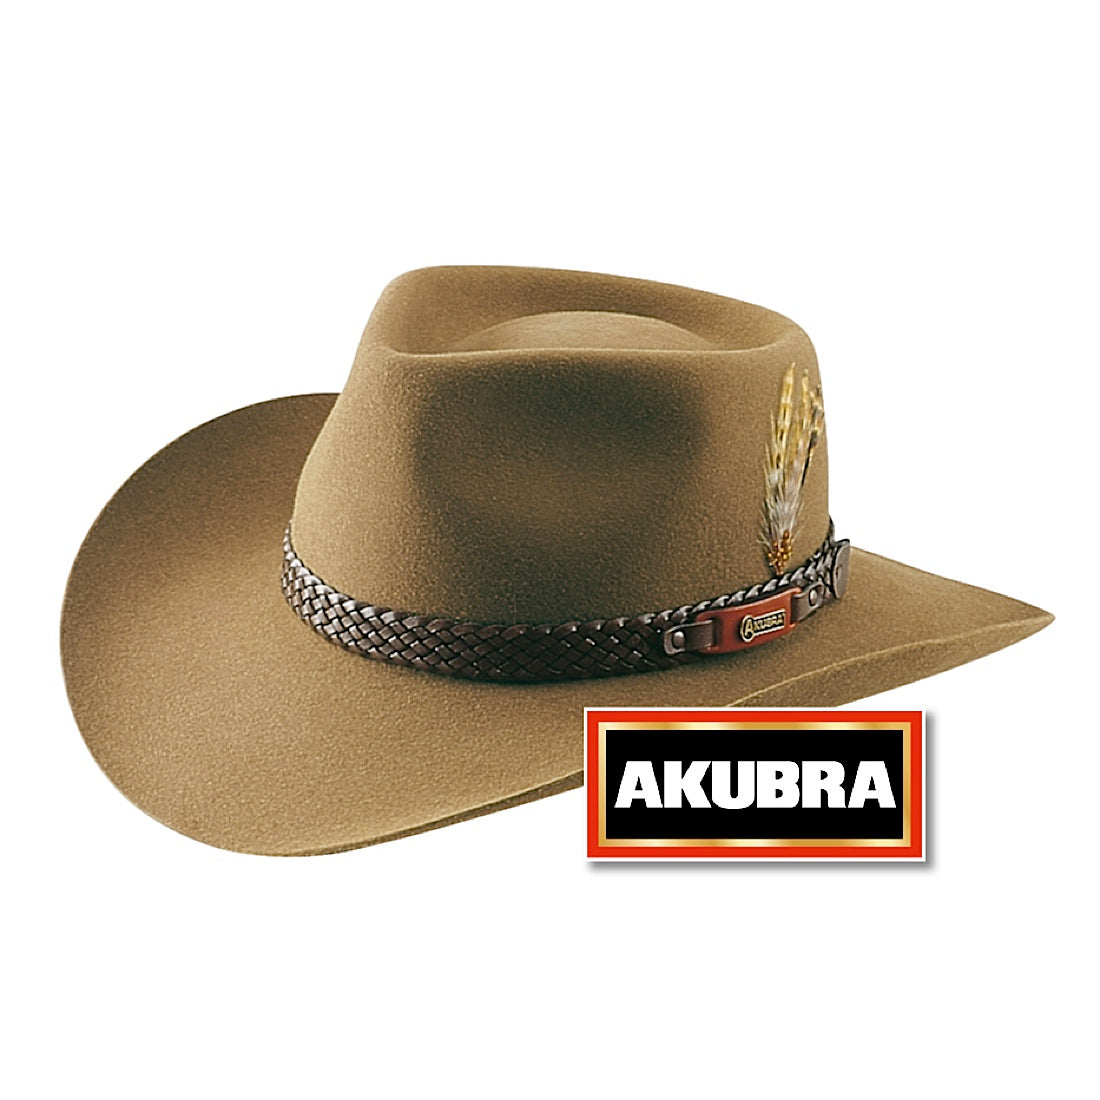 Buy Akubra Snowy River Santone - The Stable Door bc9e435f5cf